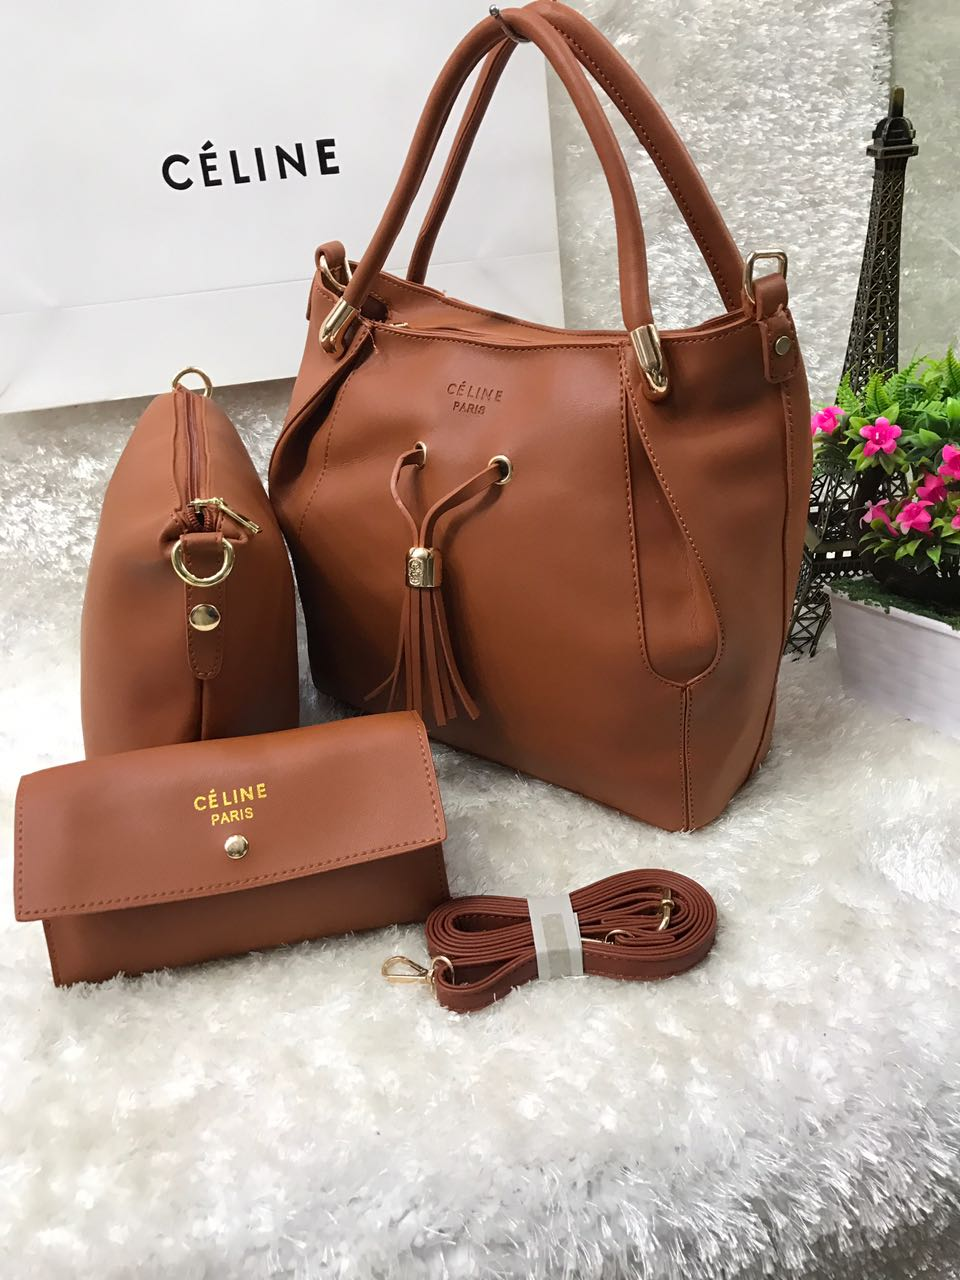 f0d9ab65f62a CÉLINE Paris 3 In 1 Handbag Set For Women Brown Price In Pakistan